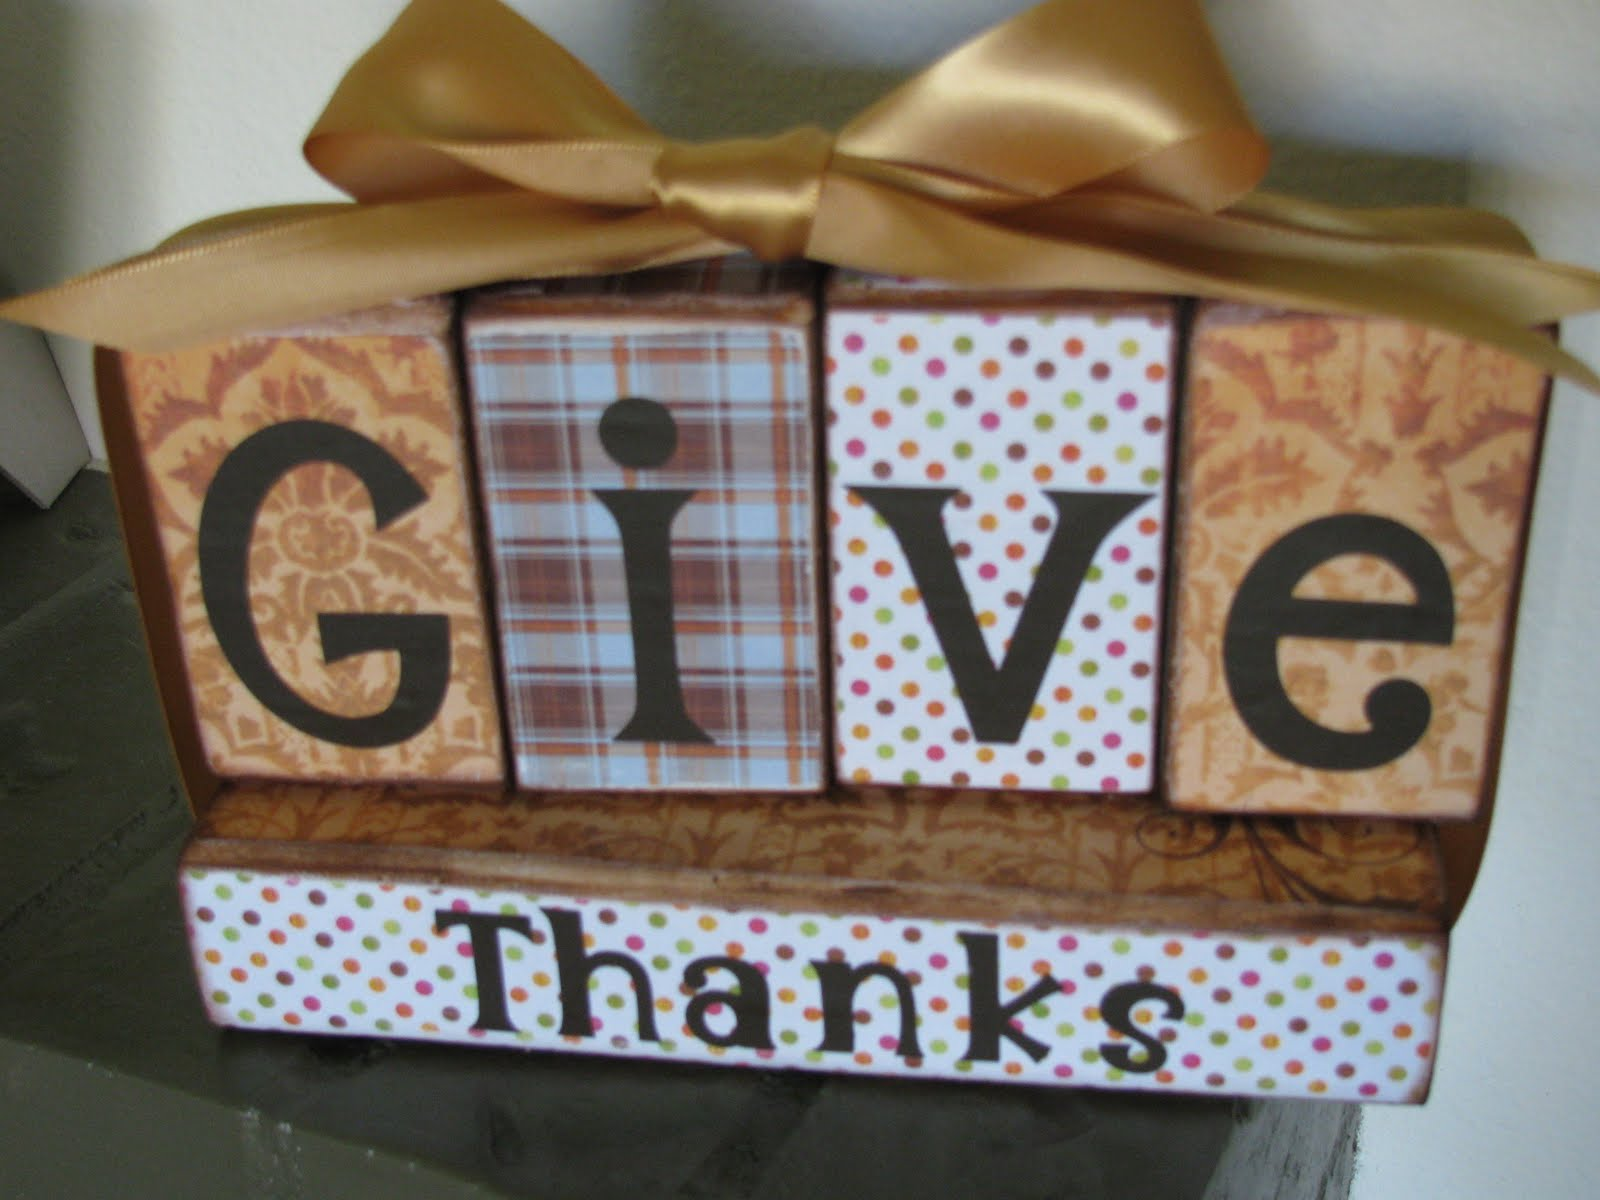 Wood Block Craft Ideas ~ My crafty playground fall blessings give thanks wood